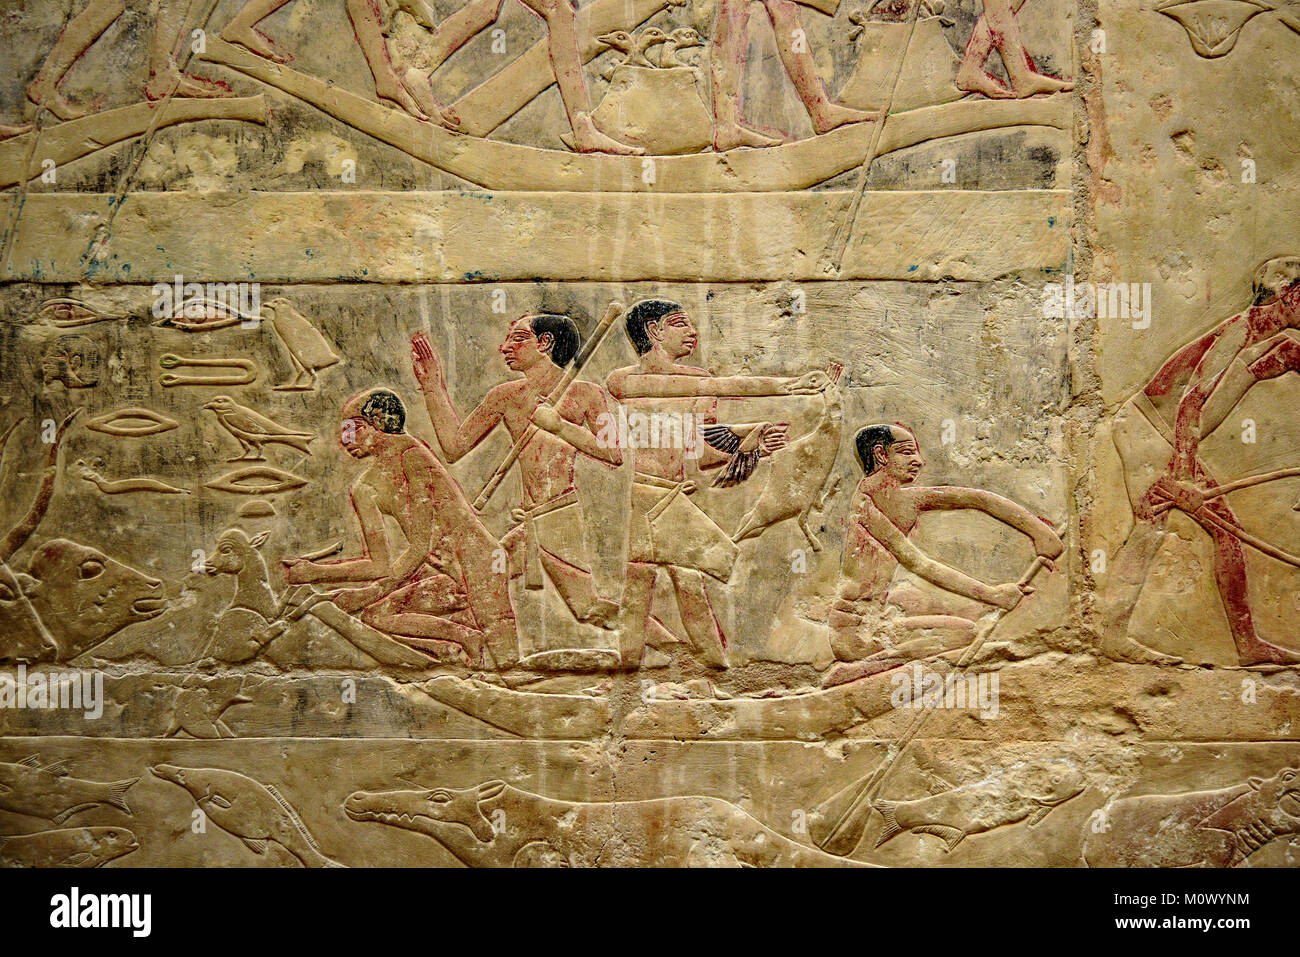 Ancient Egyptian hieroglyphic wall mural and stele depicting Stock